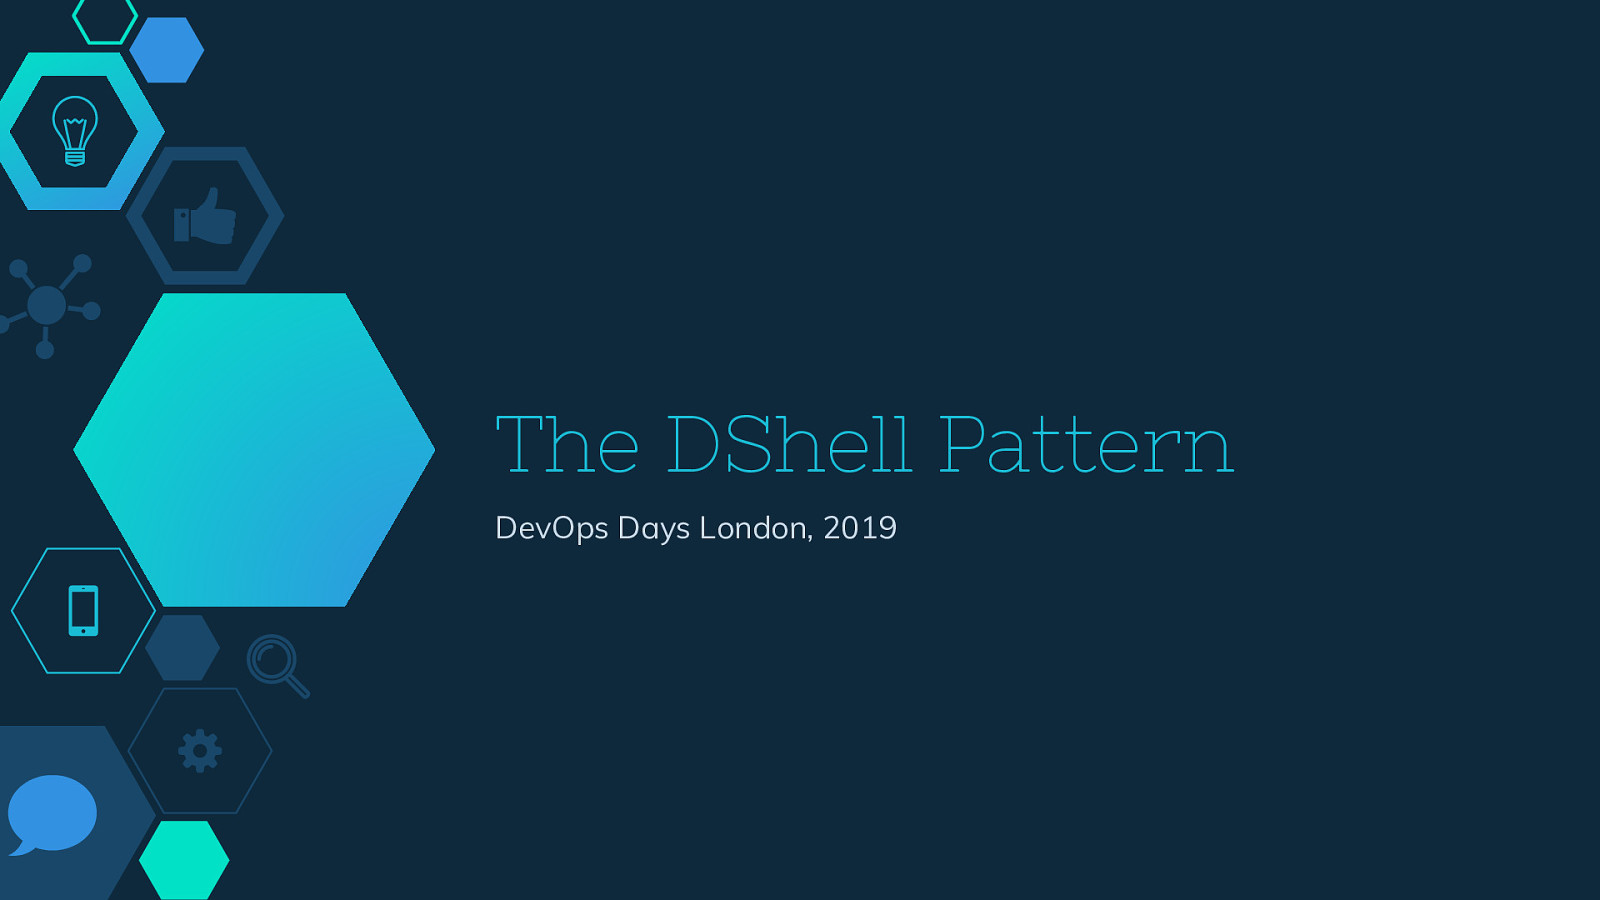 The DShell Pattern